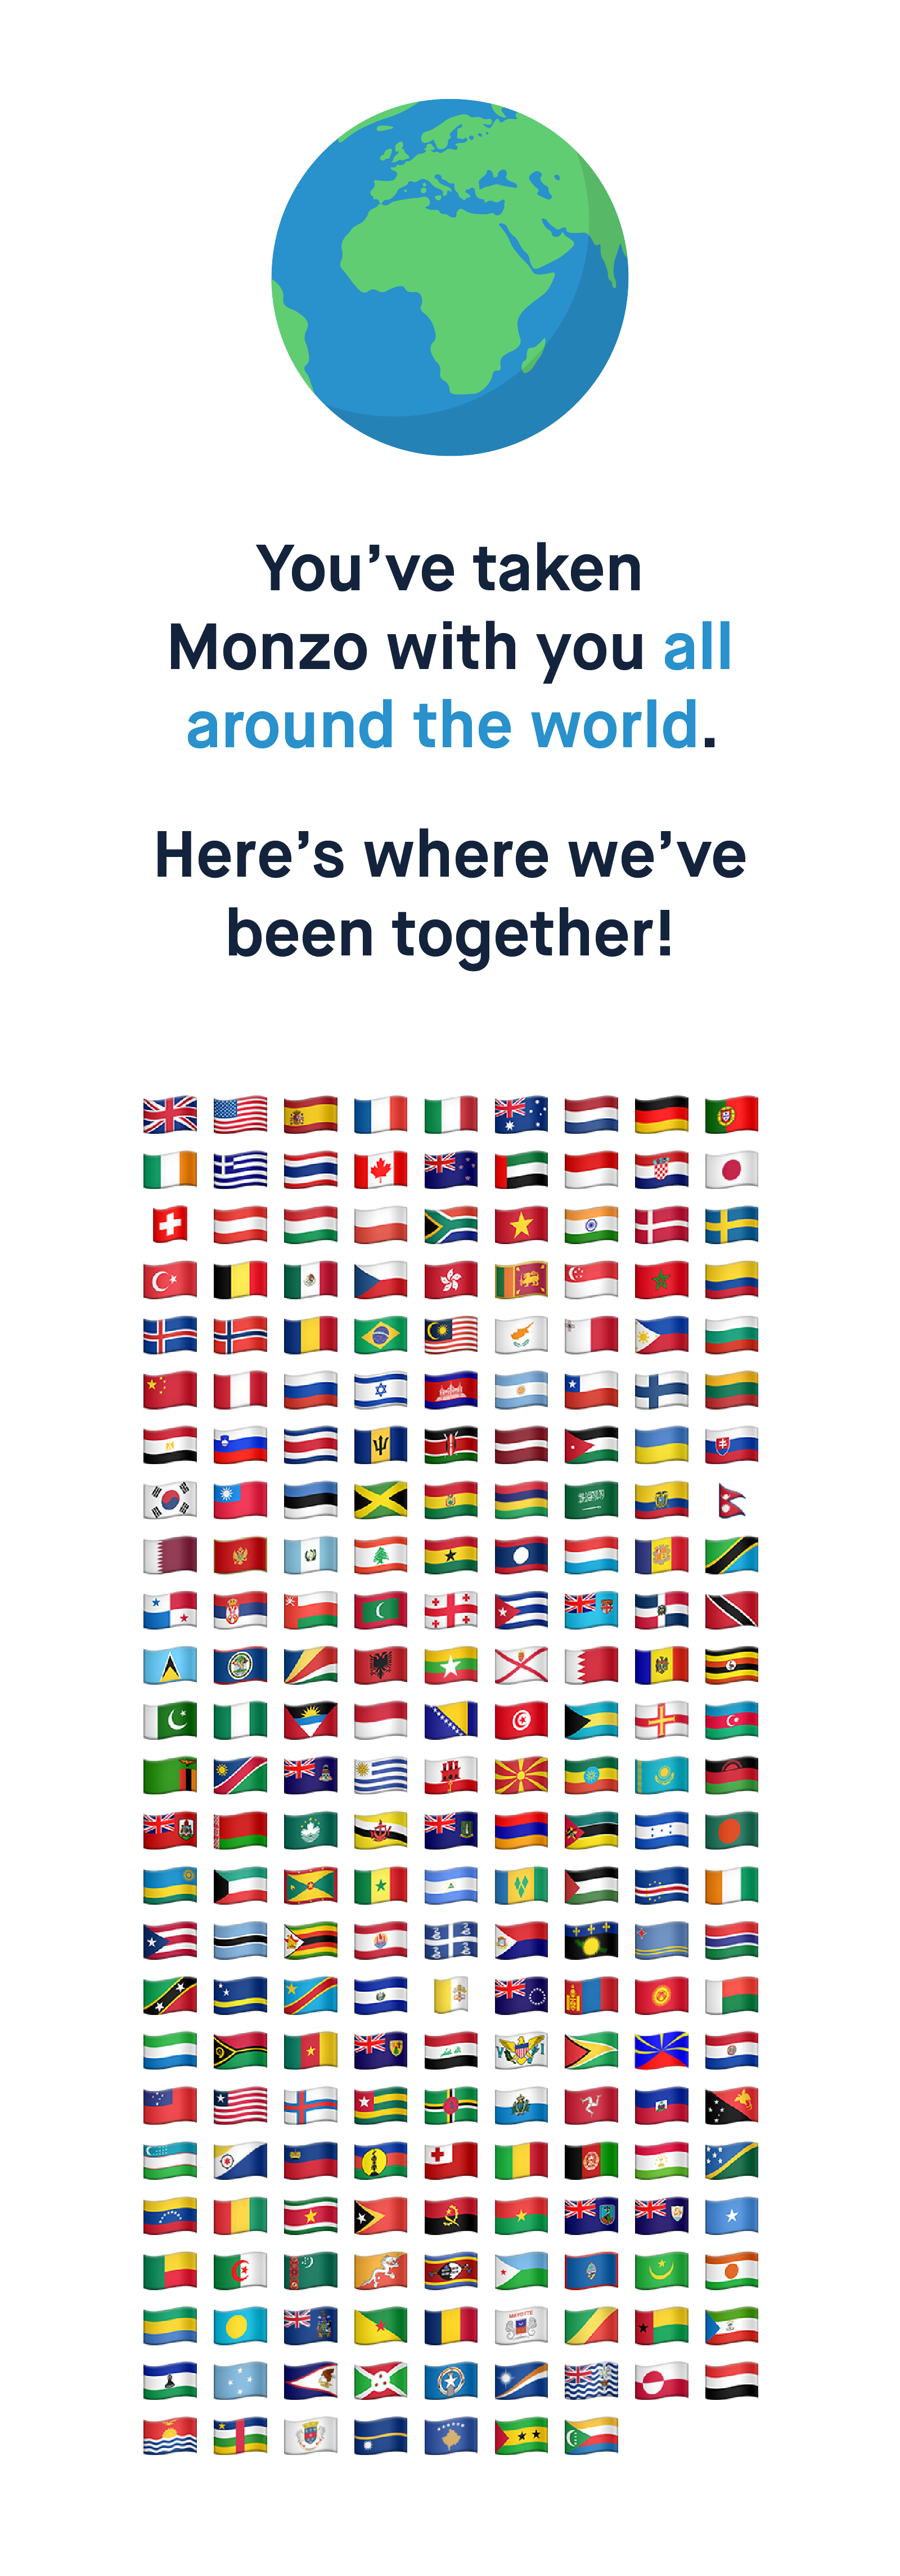 List of all the countries people have used Monzo in